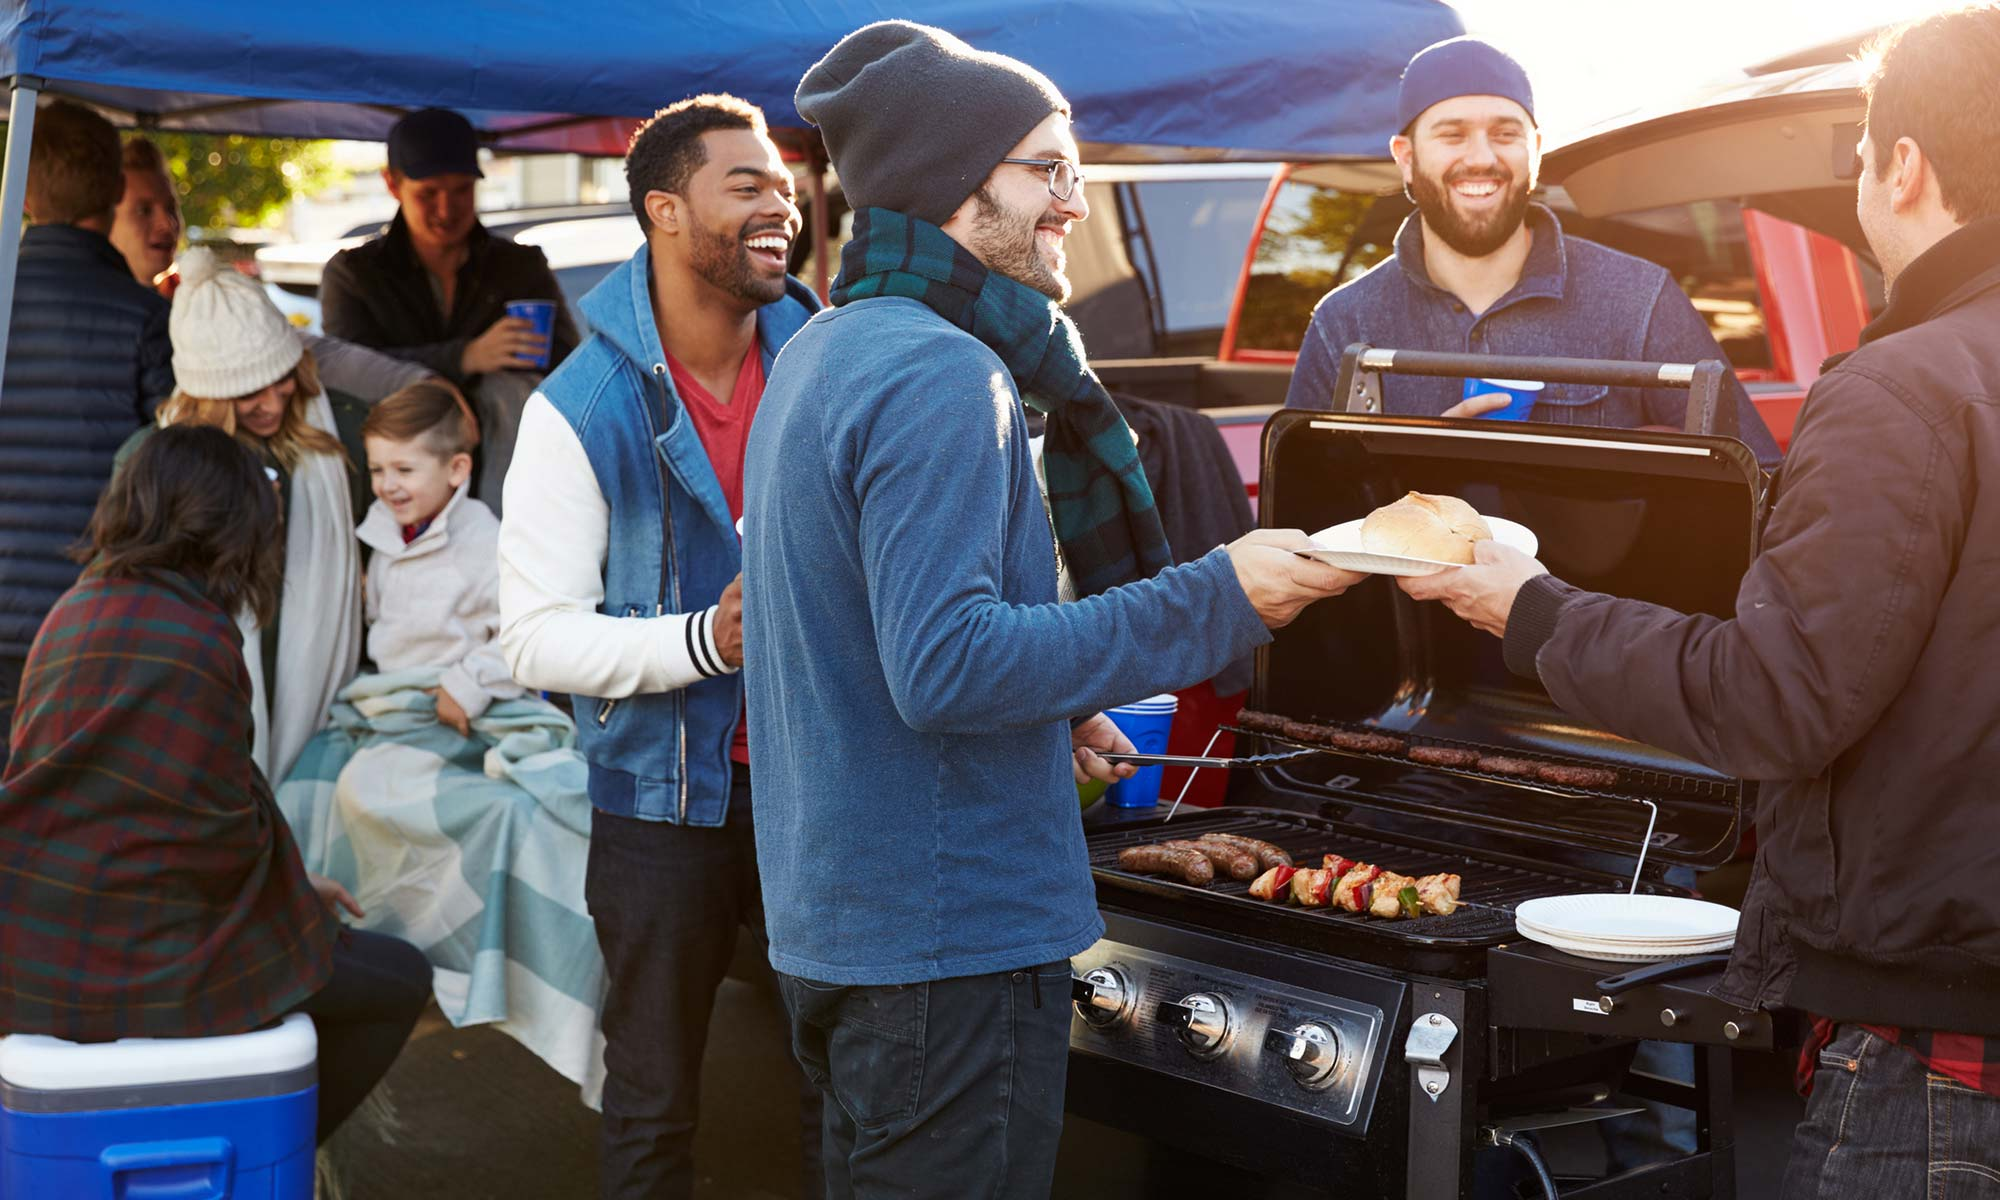 A group of people enjoying a tailgate party in the Fall.